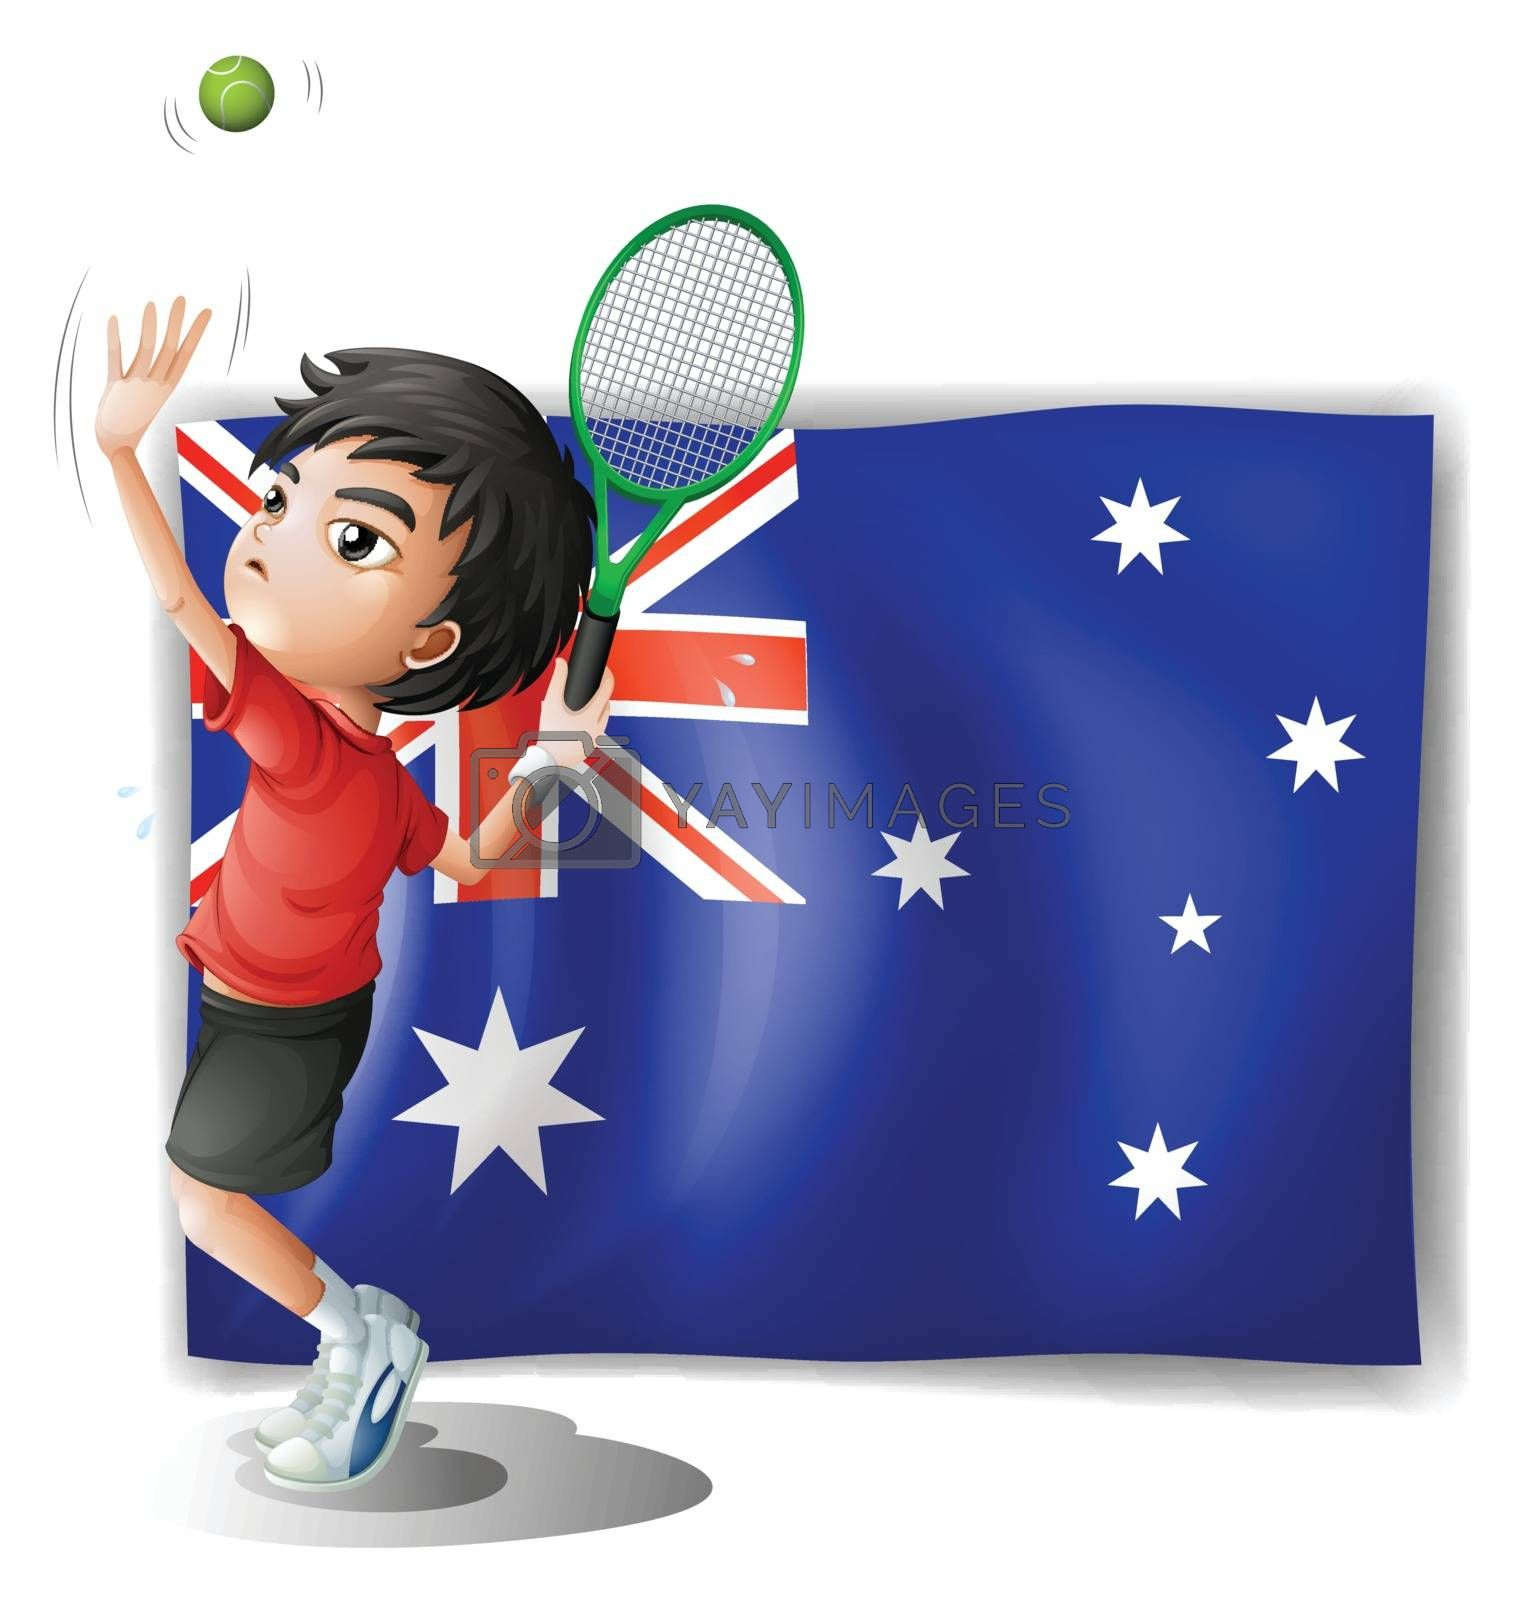 Illustration of an athlete in front of the Australian flag on a white background